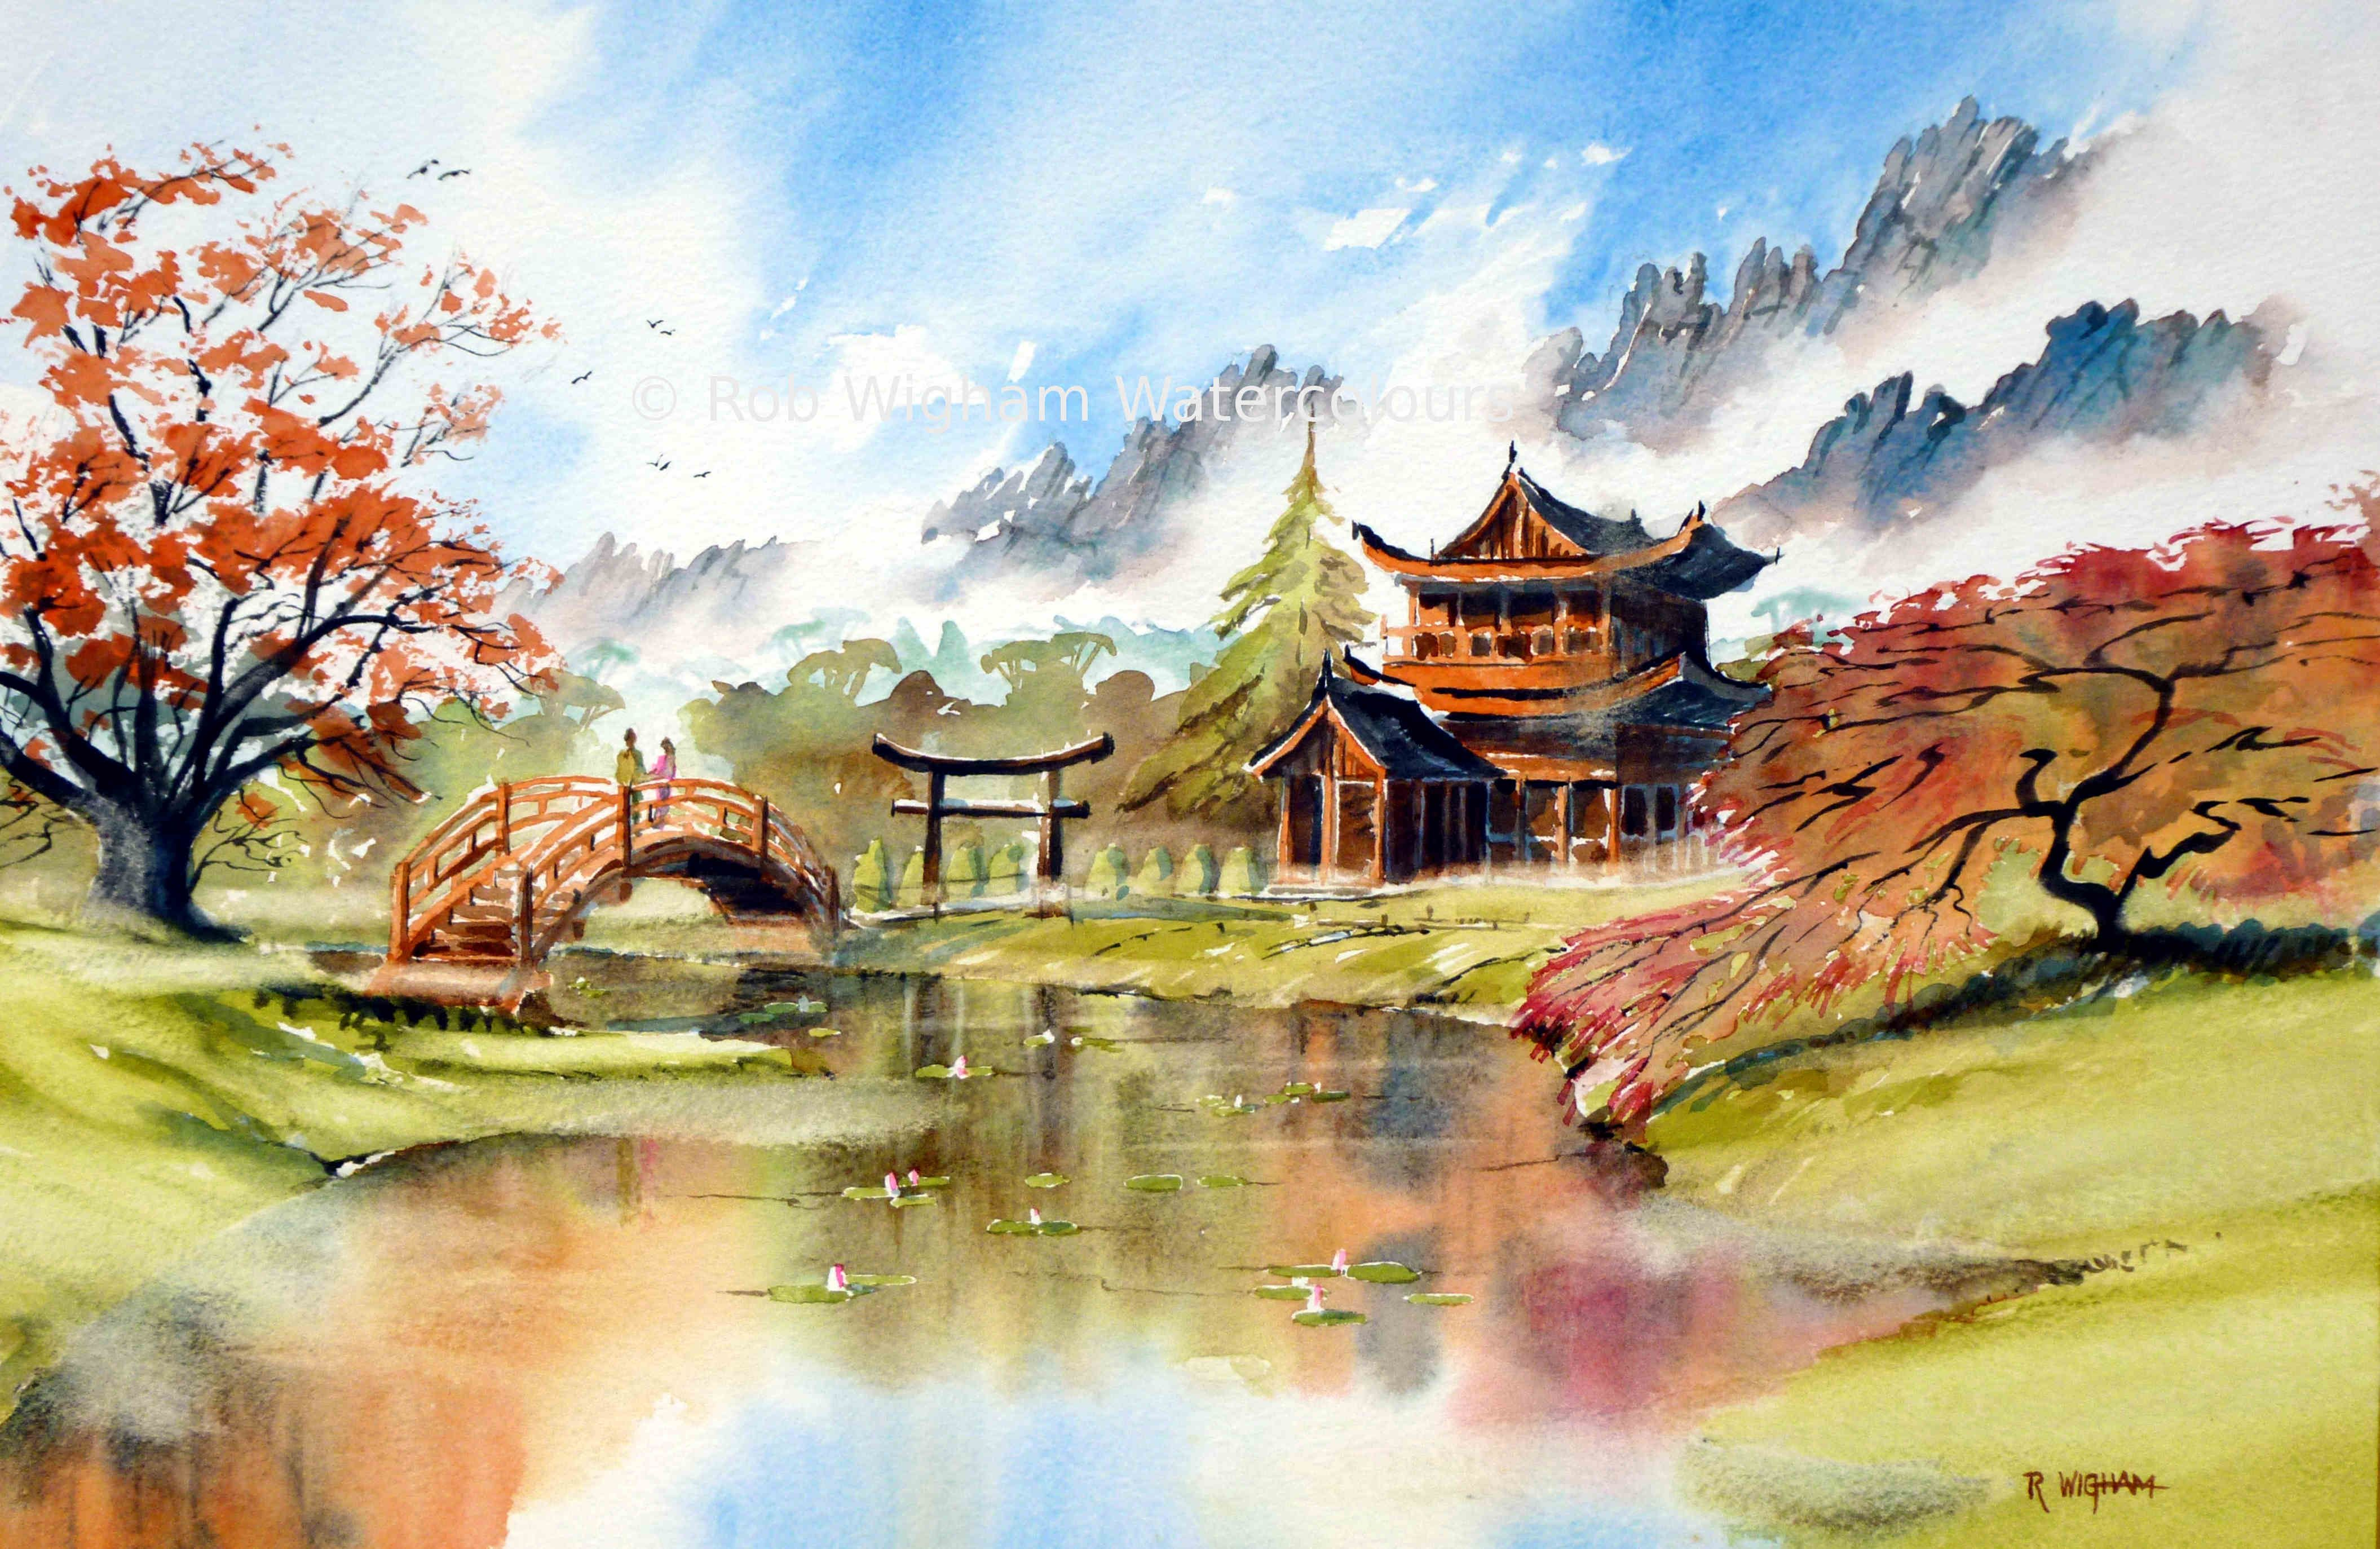 A Japanese Landscape With Mist On The Mountains And Soft